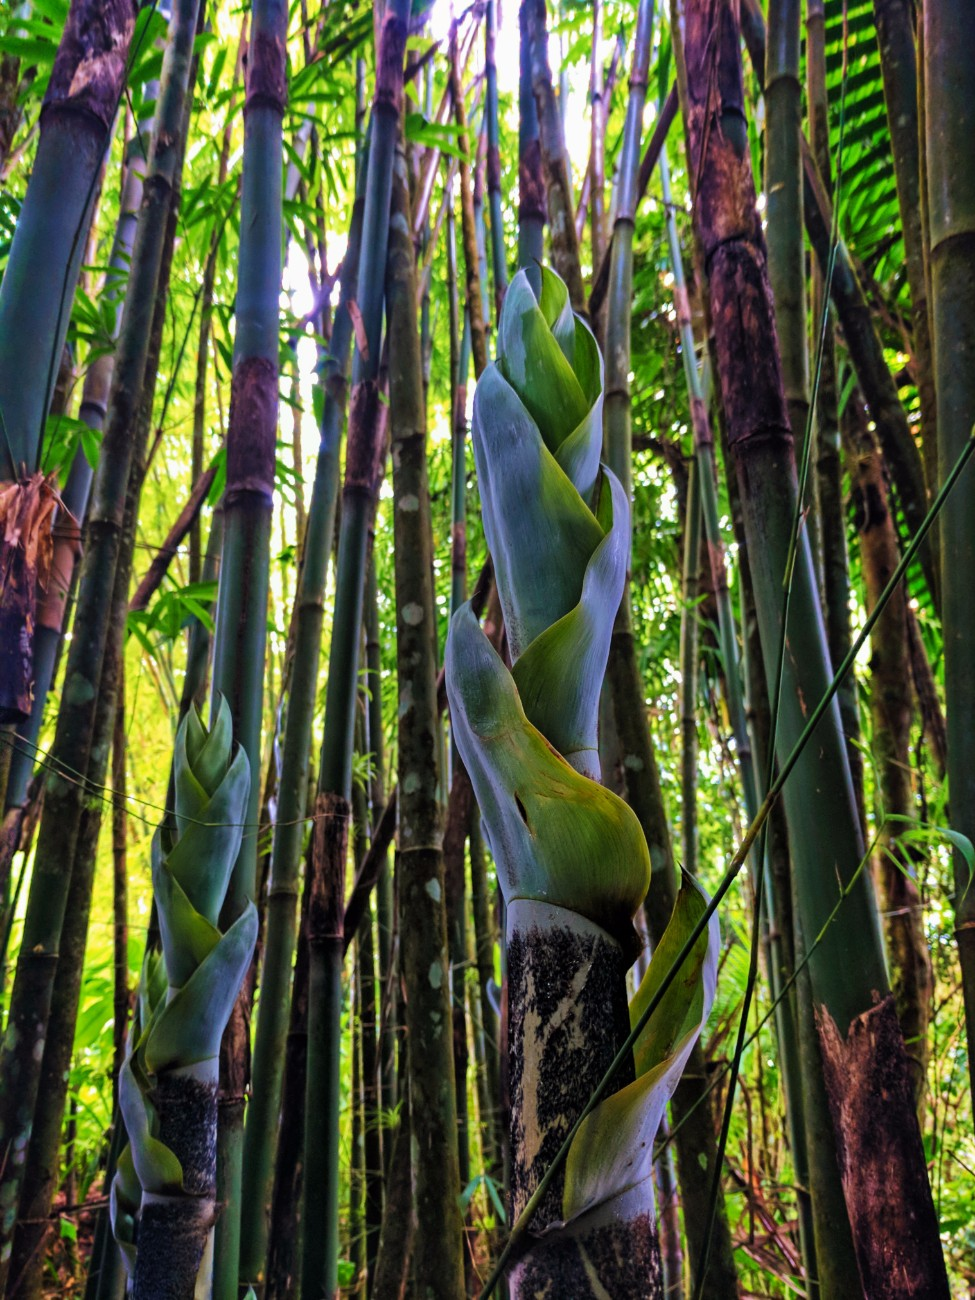 Rainforest Bamboo stand in El Yunque National Forest Puerto Rico 3